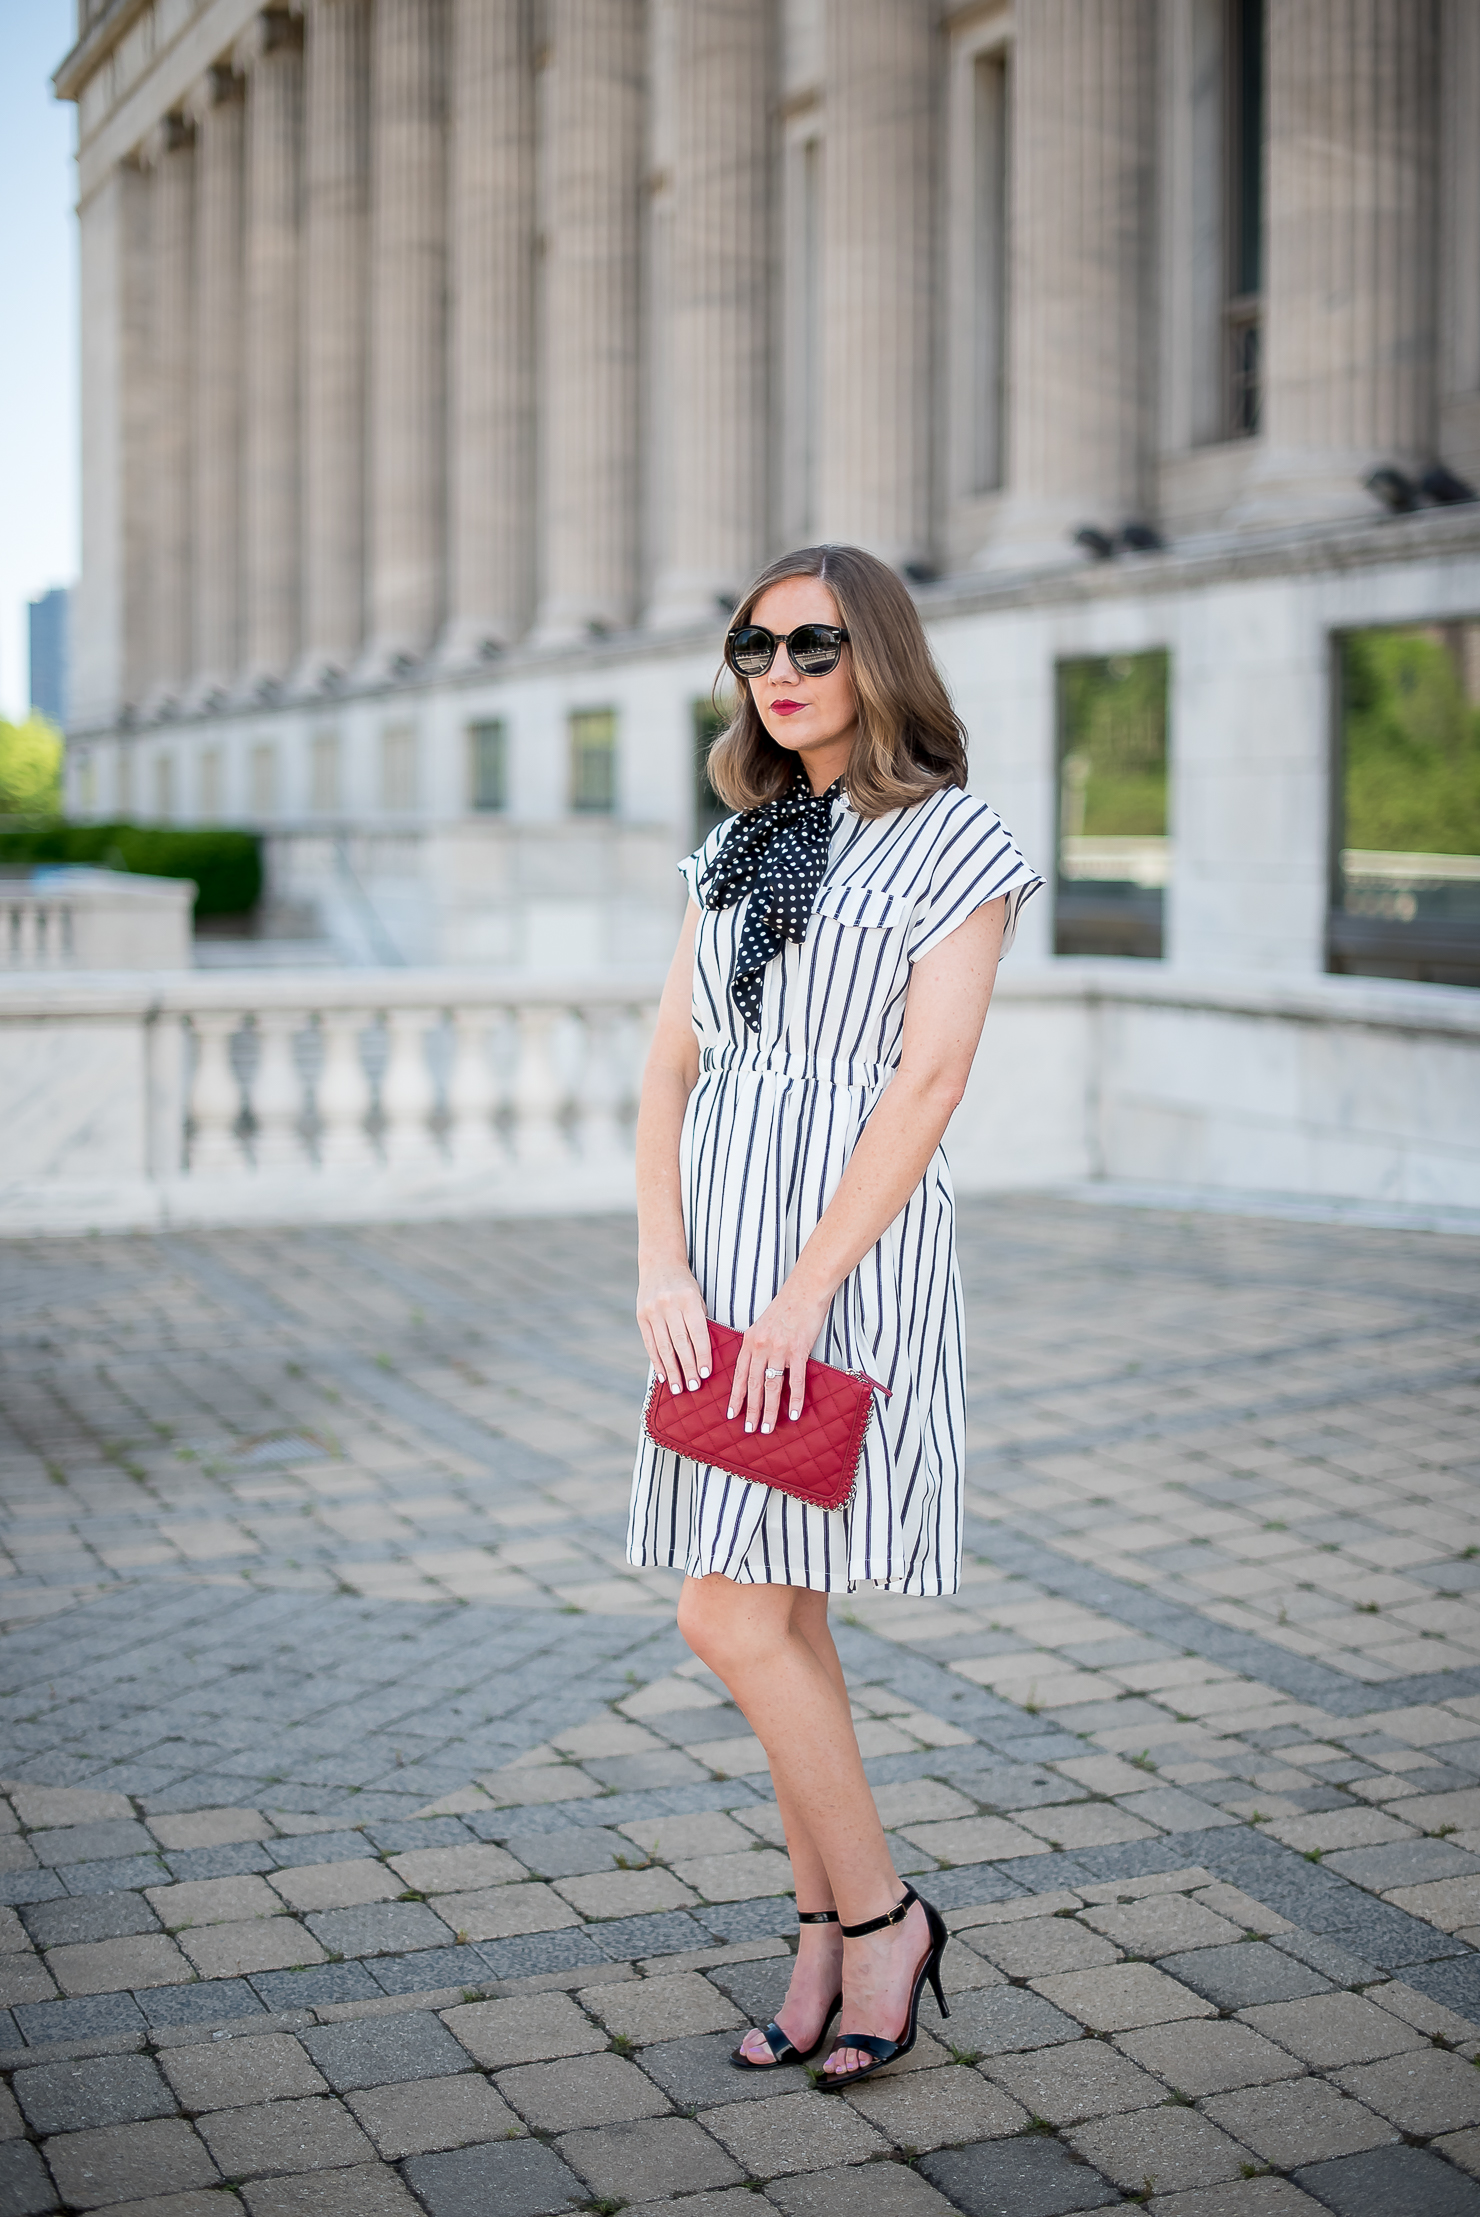 print-mixing-choies-white-and-black-striped-dress-forever-21-red-quilted-chain-clutch-black-strappy-heels-chicago-field-museum